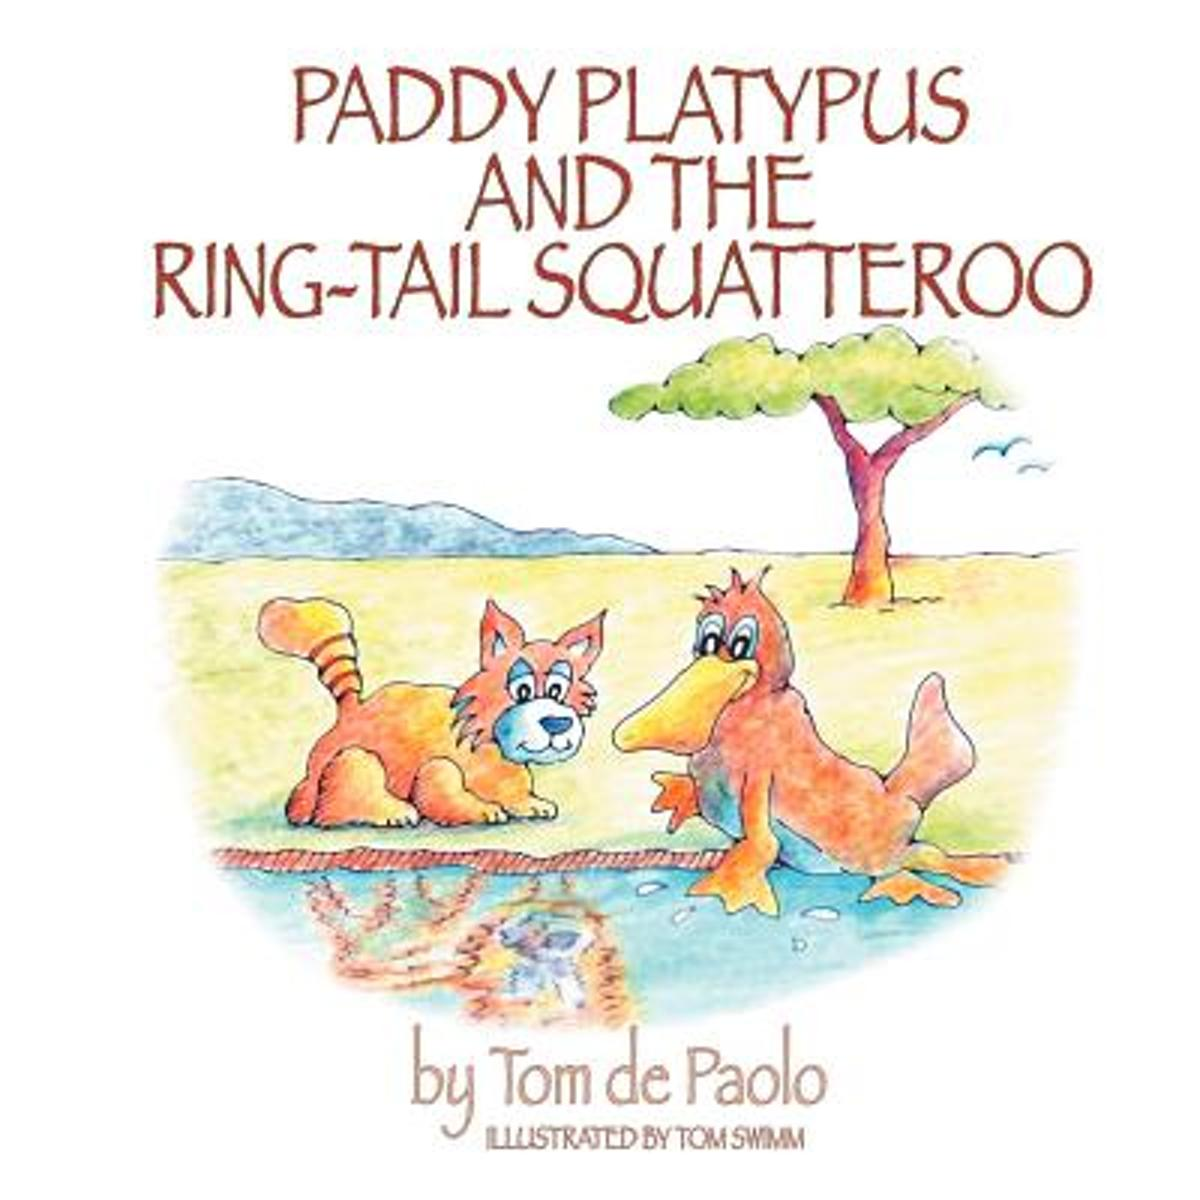 Paddy Platypus and the Ring-Tail Squatteroo